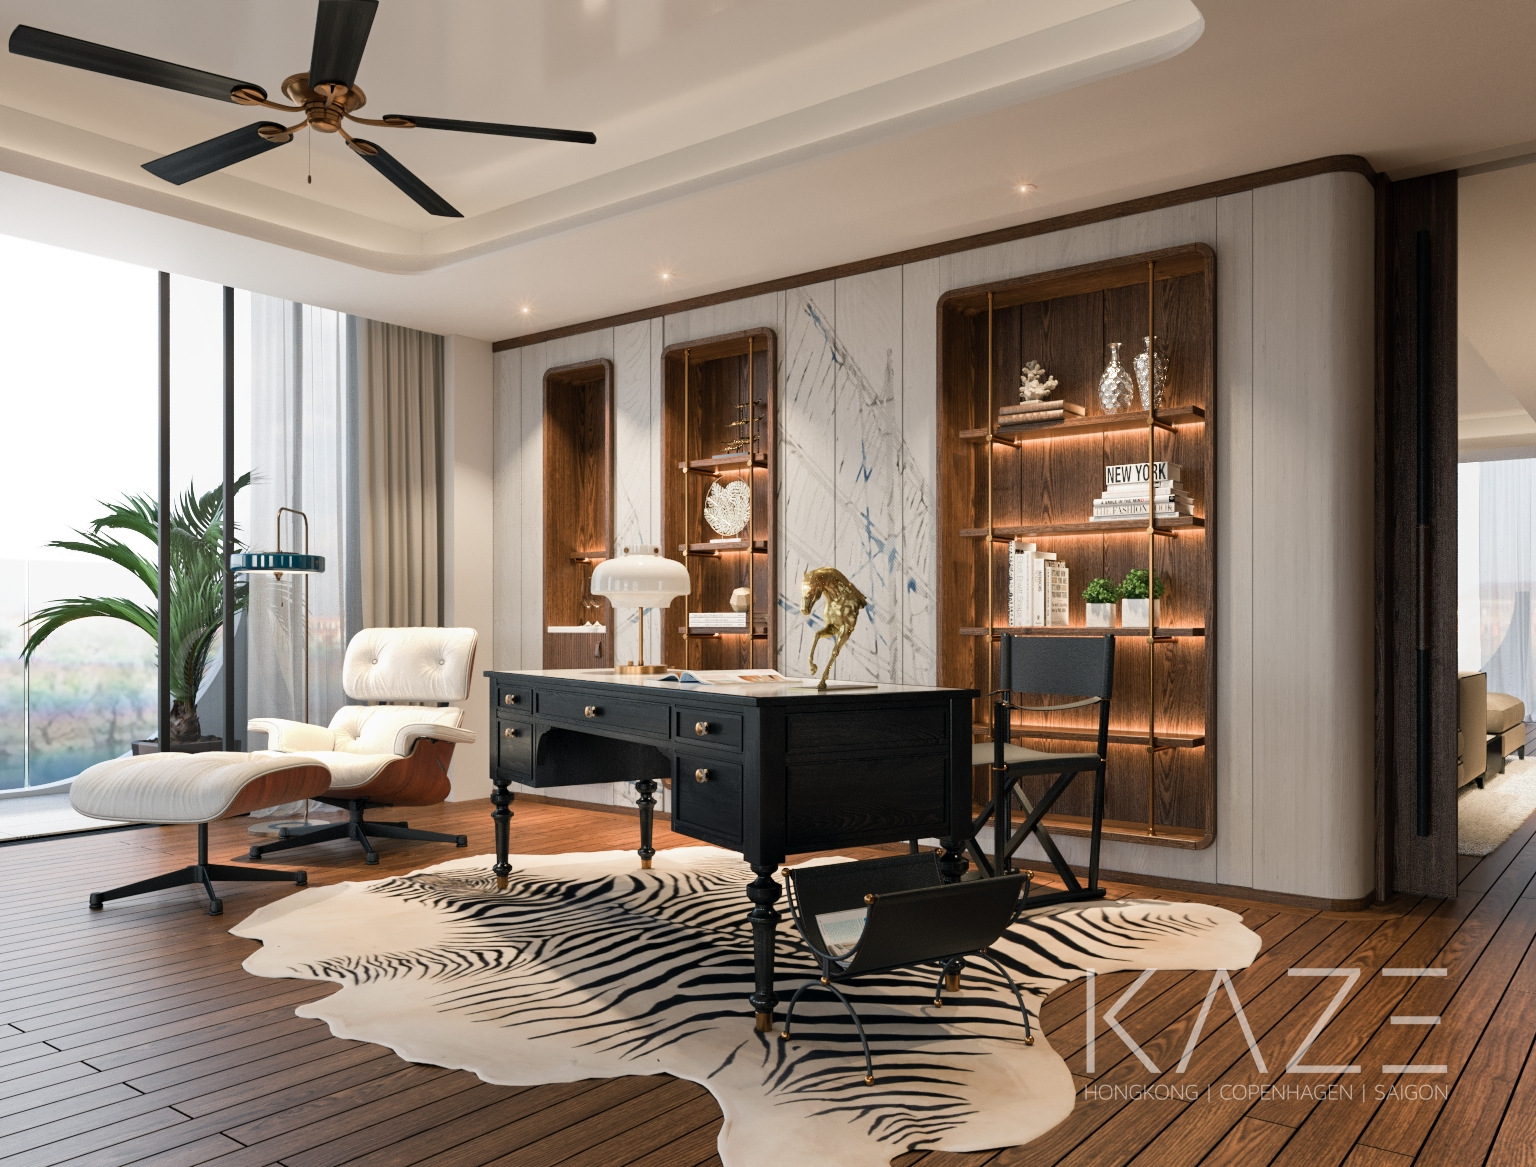 The Yacht Hotel by DC - Rooms - Presidential Suite